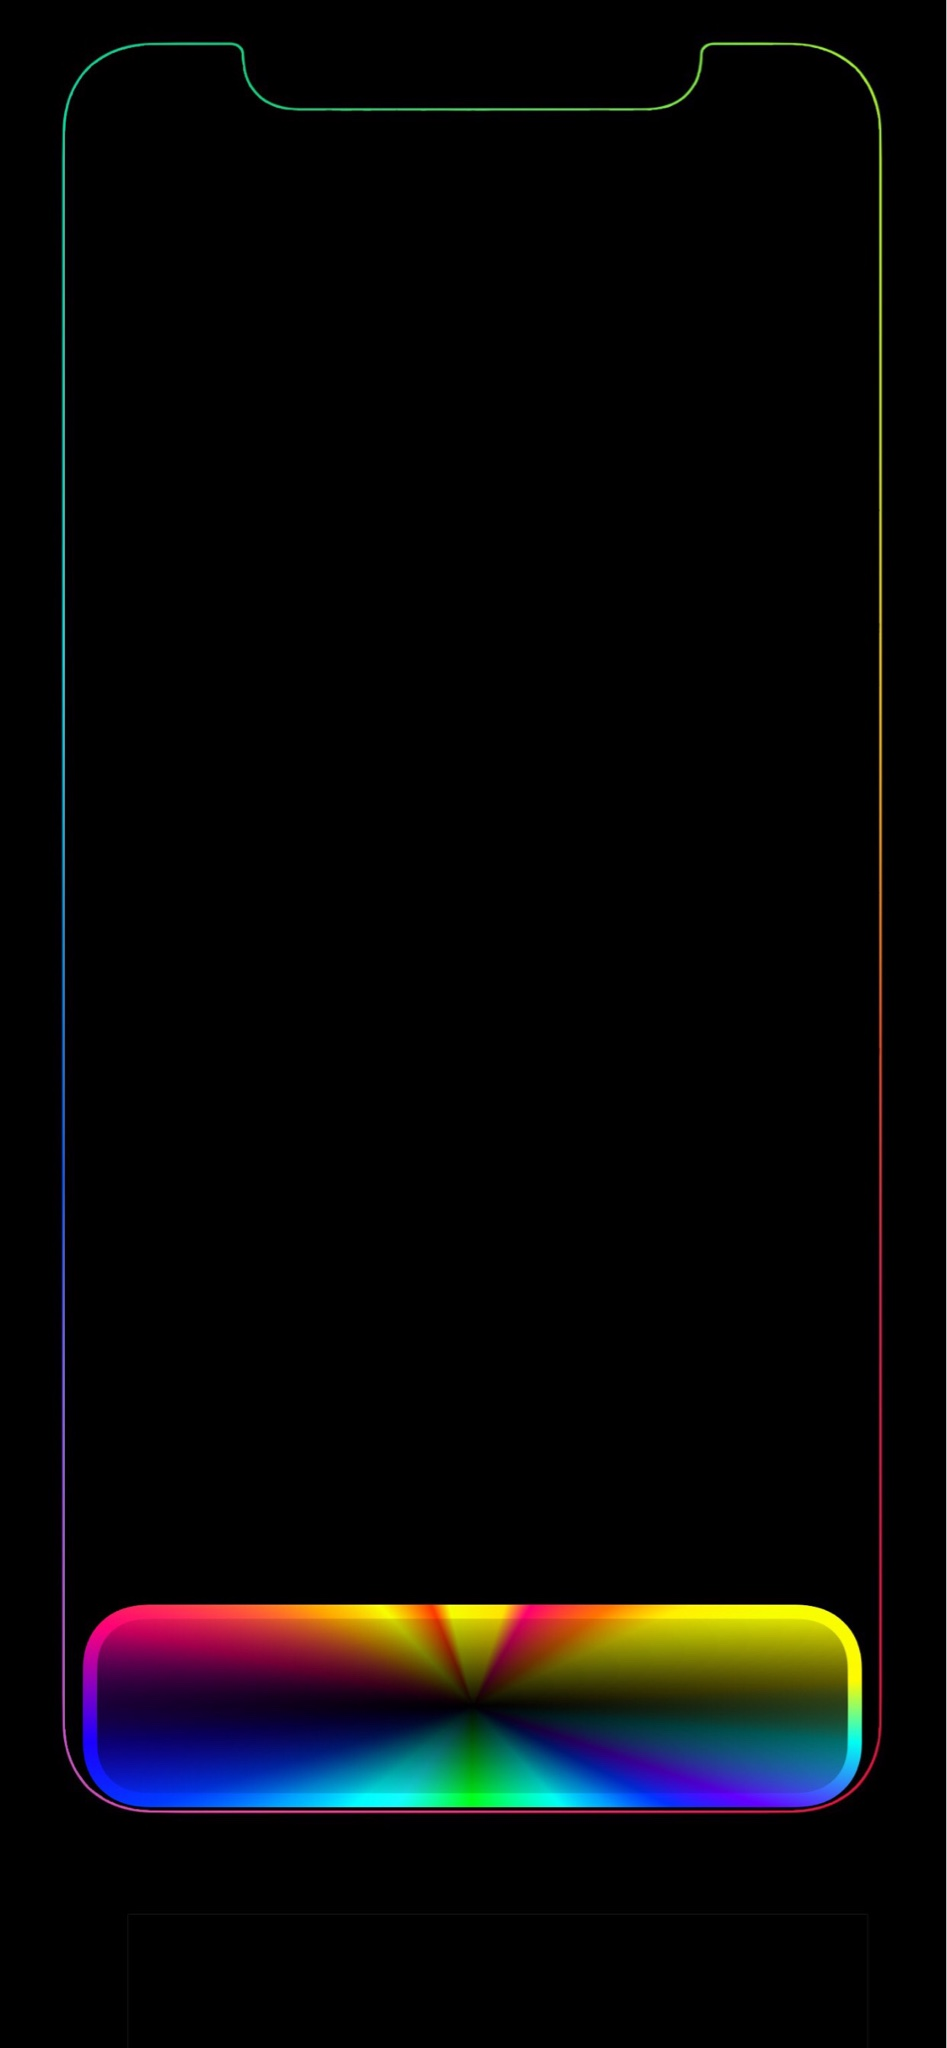 The Iphone Xs Max Pro Max Wallpaper Thread Page 10 Iphone Ipad Ipod Forums At Imore Com